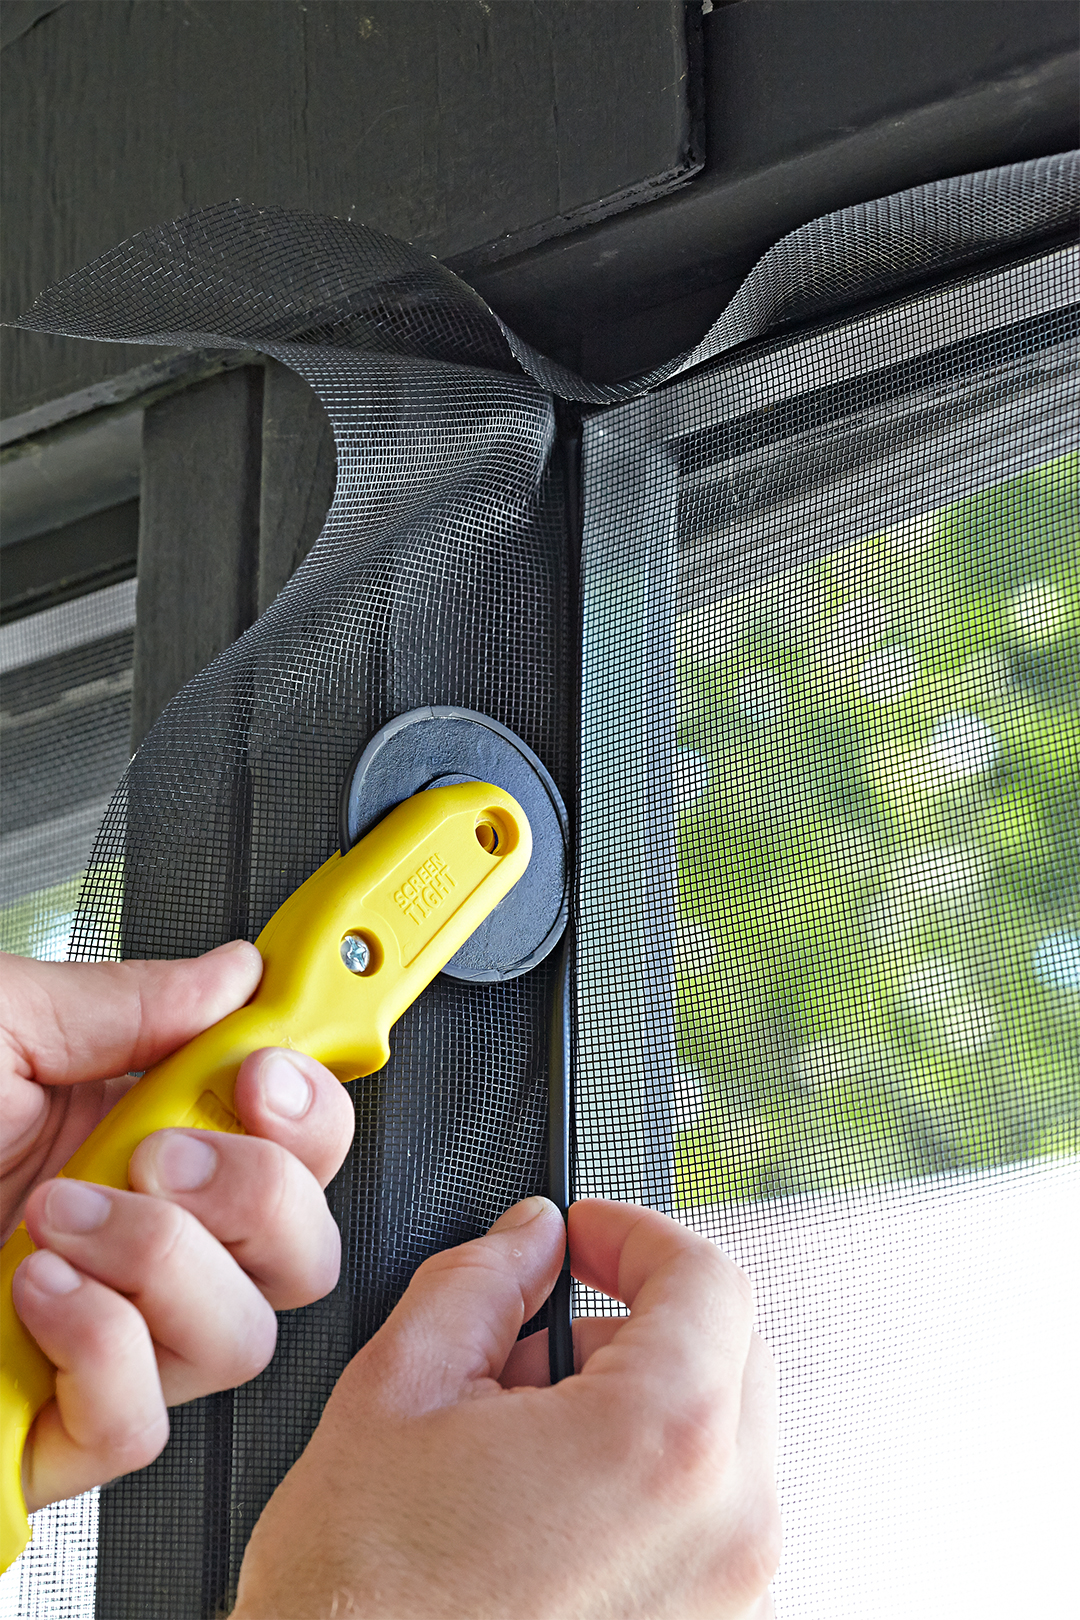 install screen system trim excess screen with roller knife